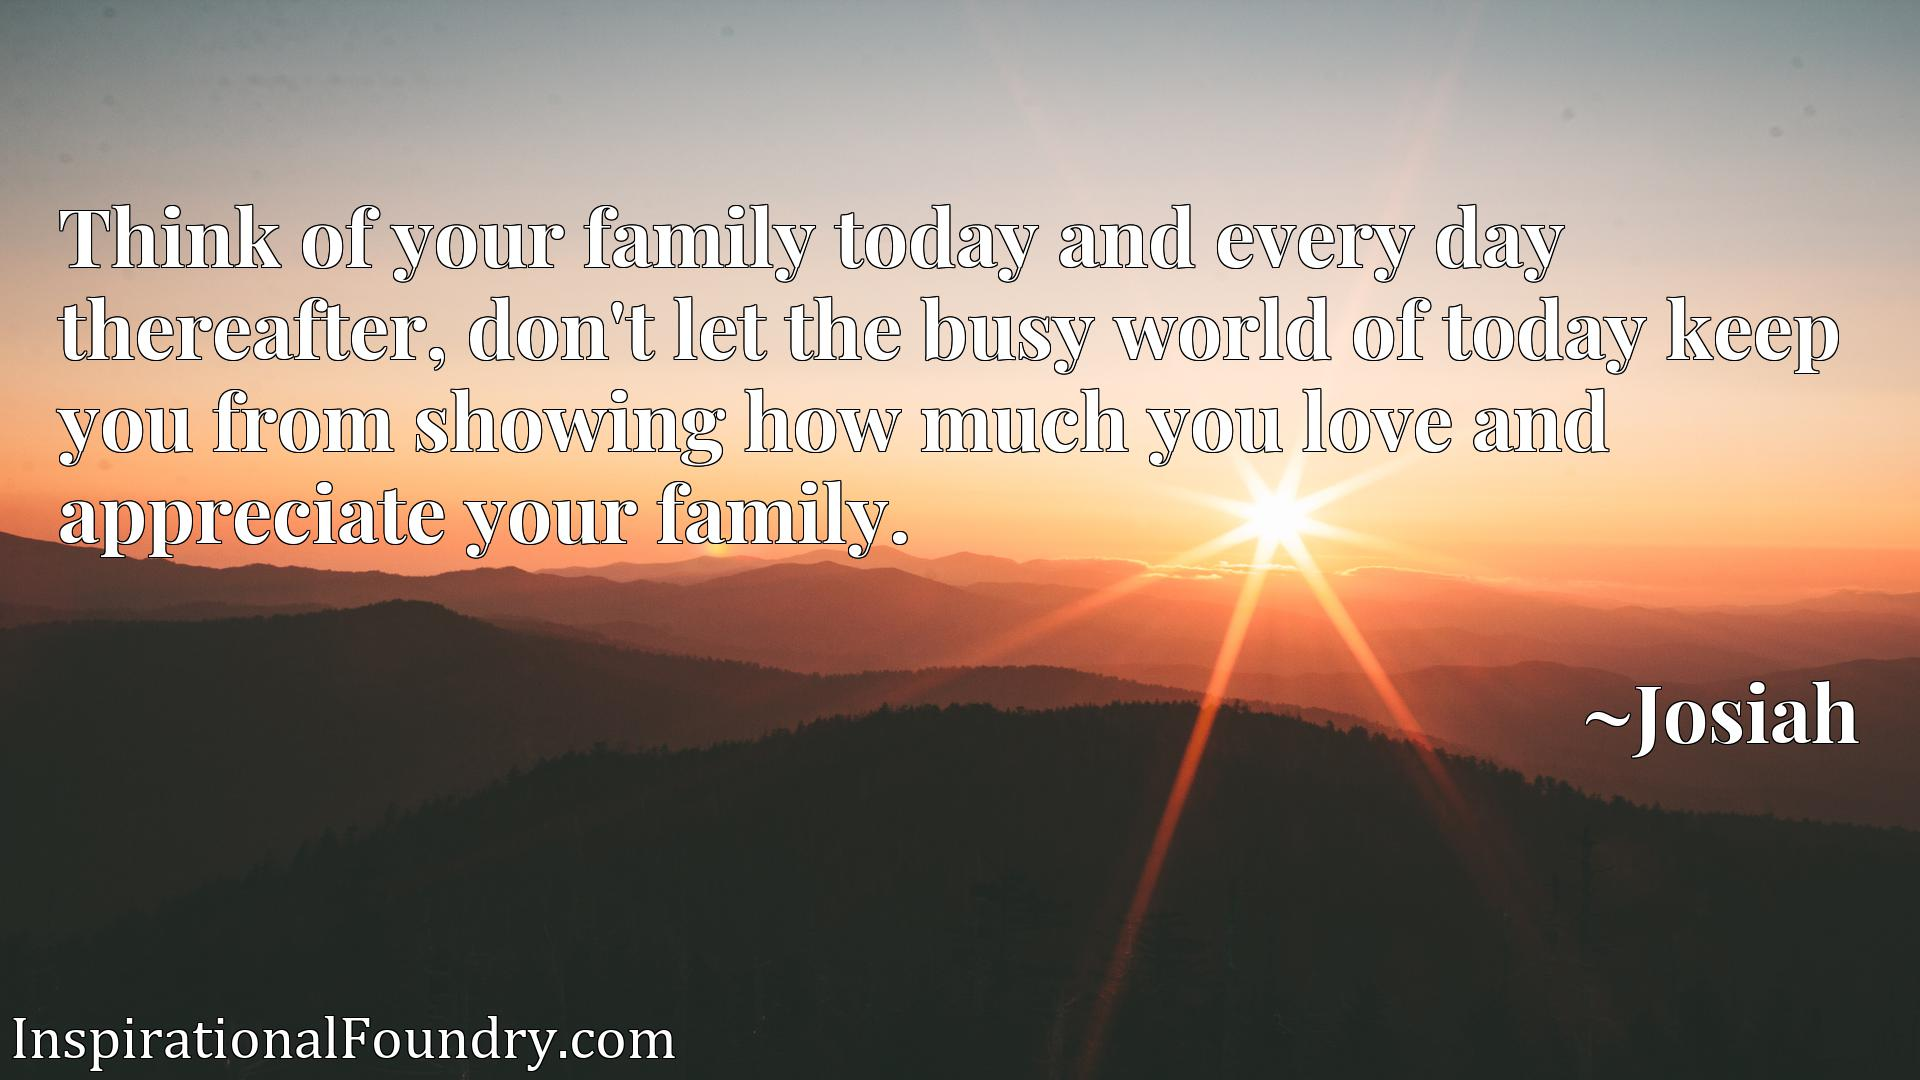 Think of your family today and every day thereafter, don't let the busy world of today keep you from showing how much you love and appreciate your family.